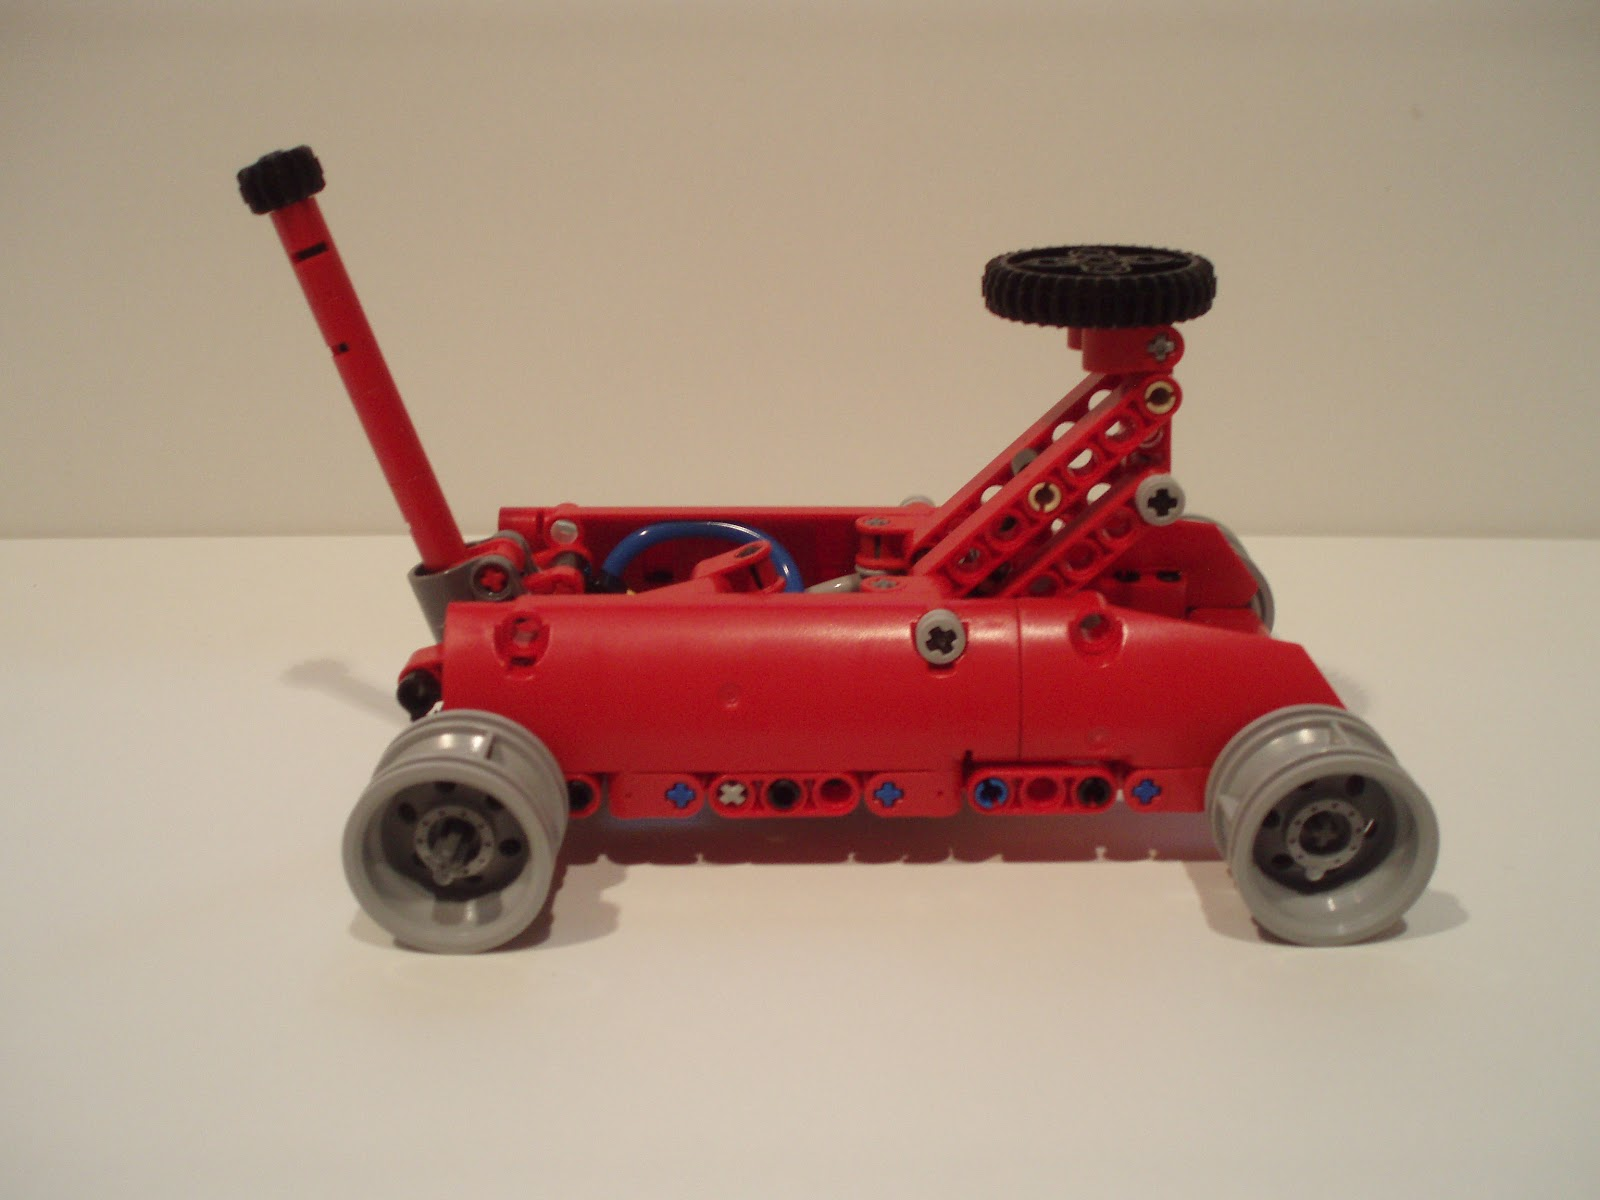 Driva00s Lego Technic Creations Building Instruction Available For